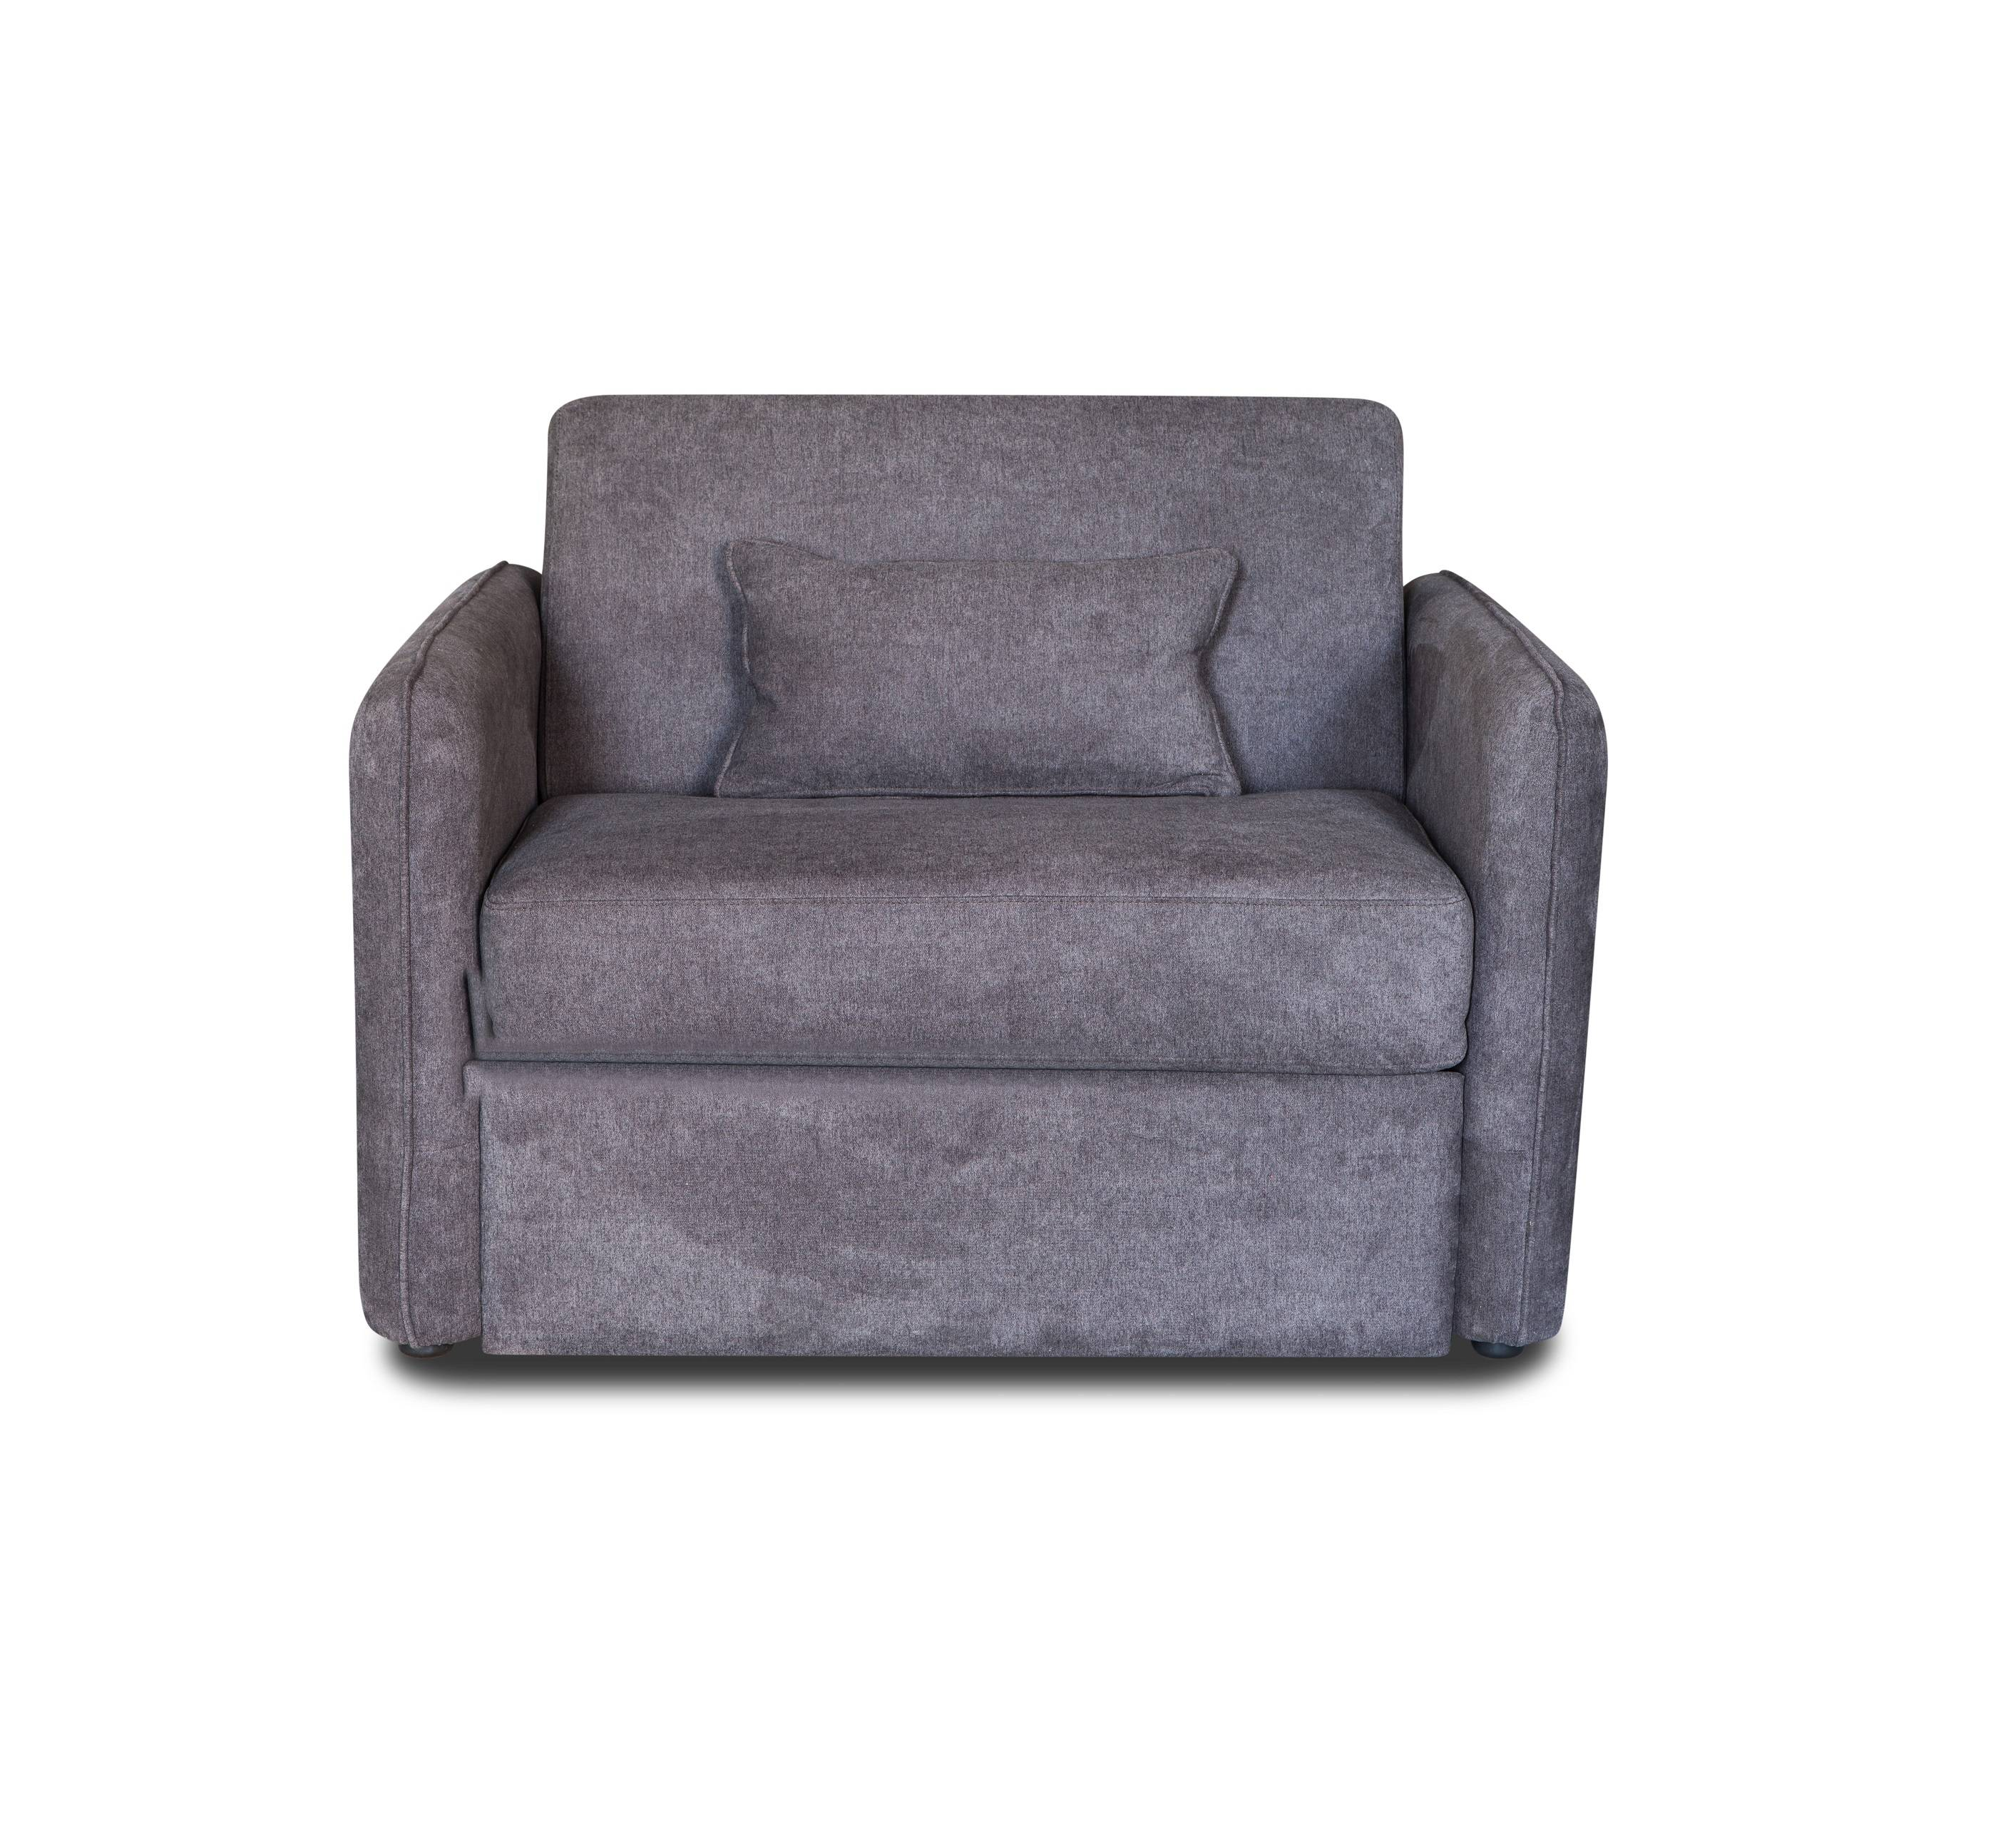 Royal grey fabric soft leisure single seat sofa chair